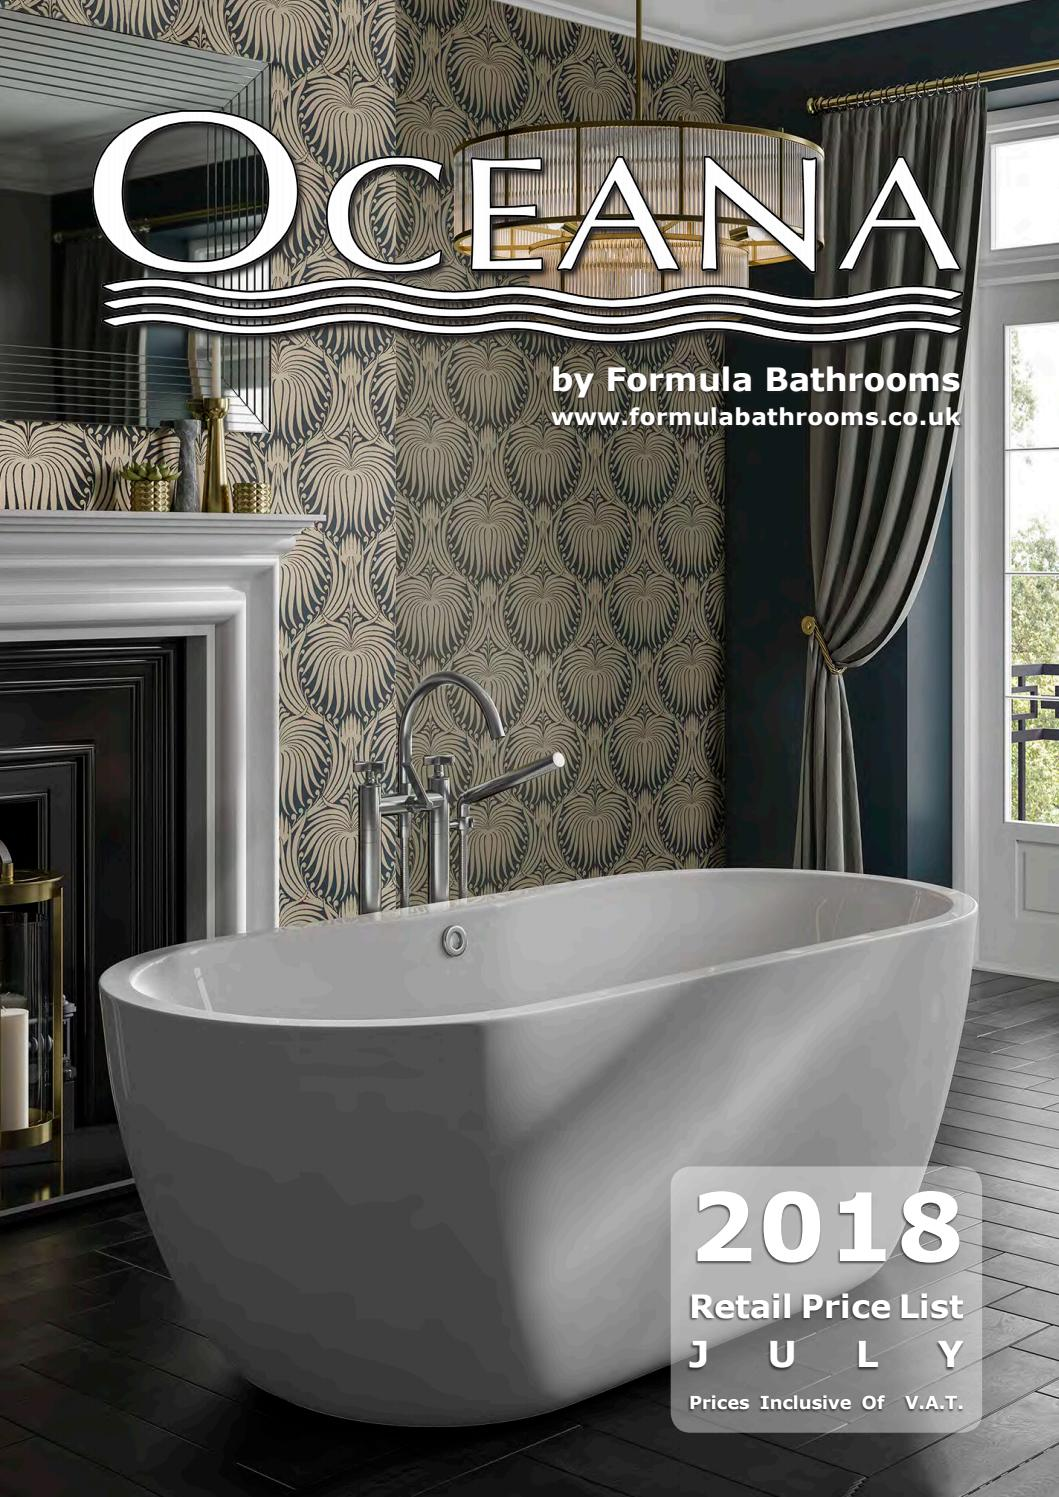 Oceana By Formula Bathrooms 340 Page Product Catalogue July 2018